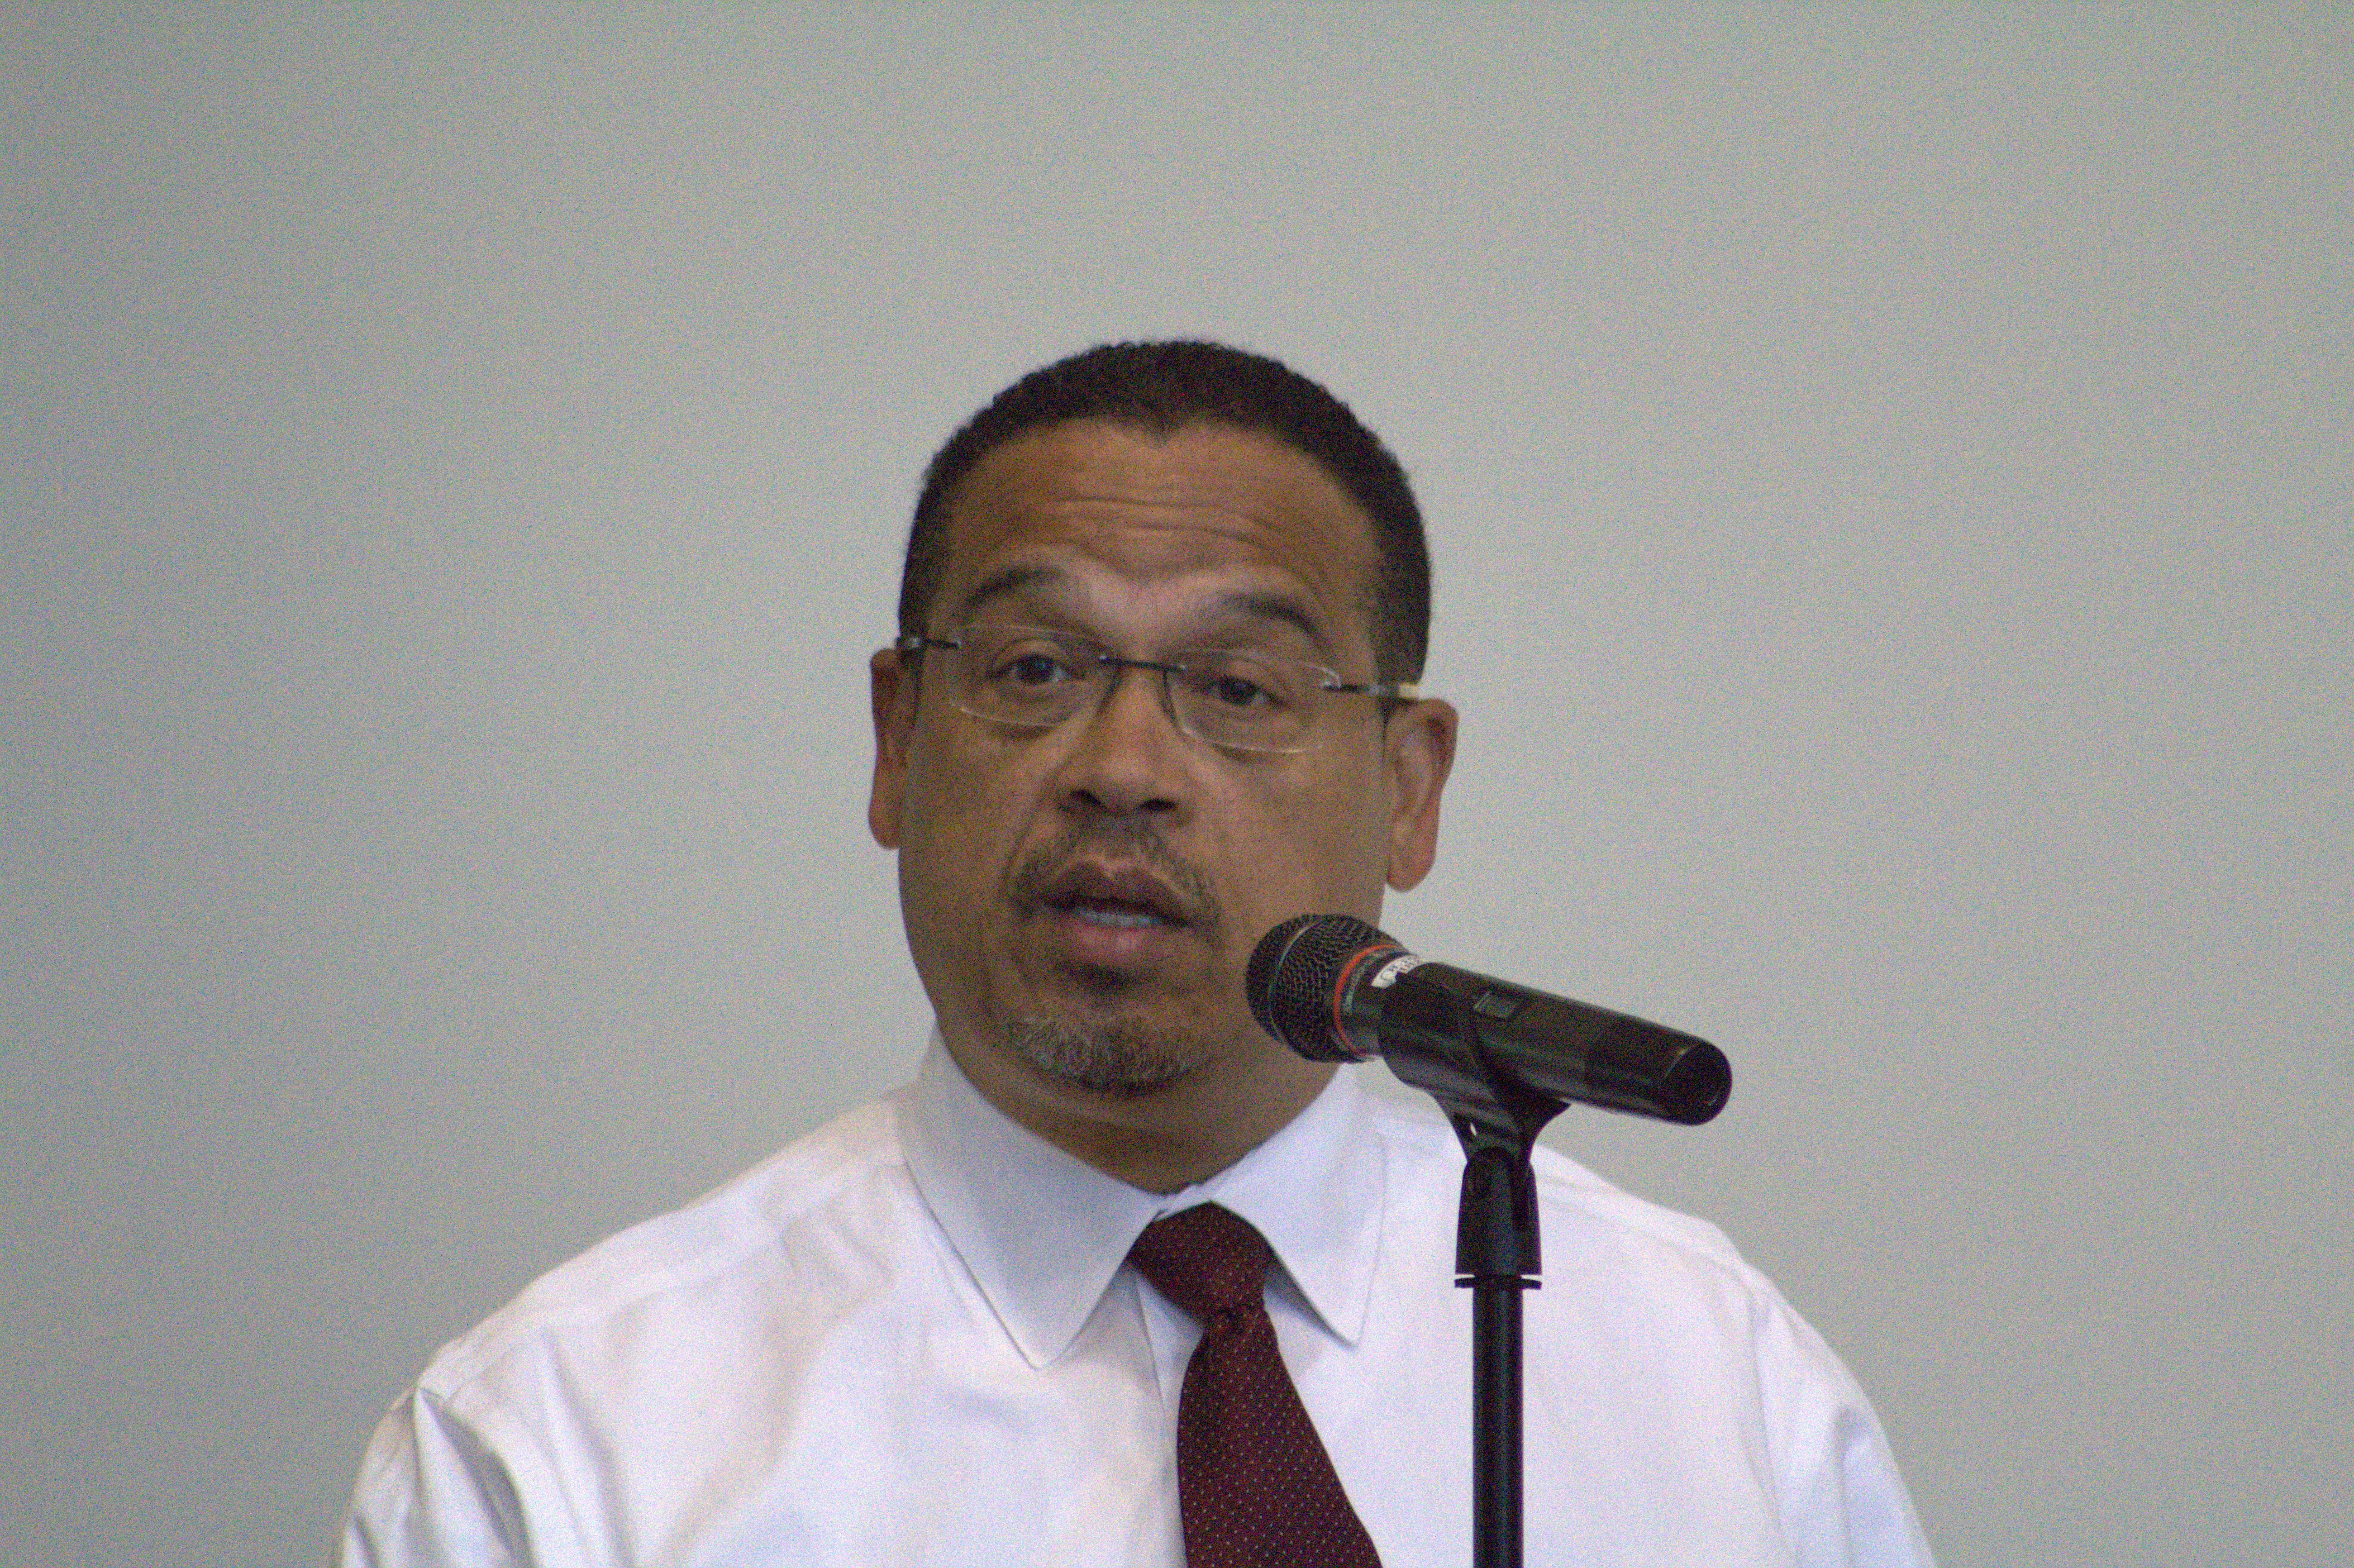 Rep. Ellison breezes through Q&A at MCTC, falters after reporter's question